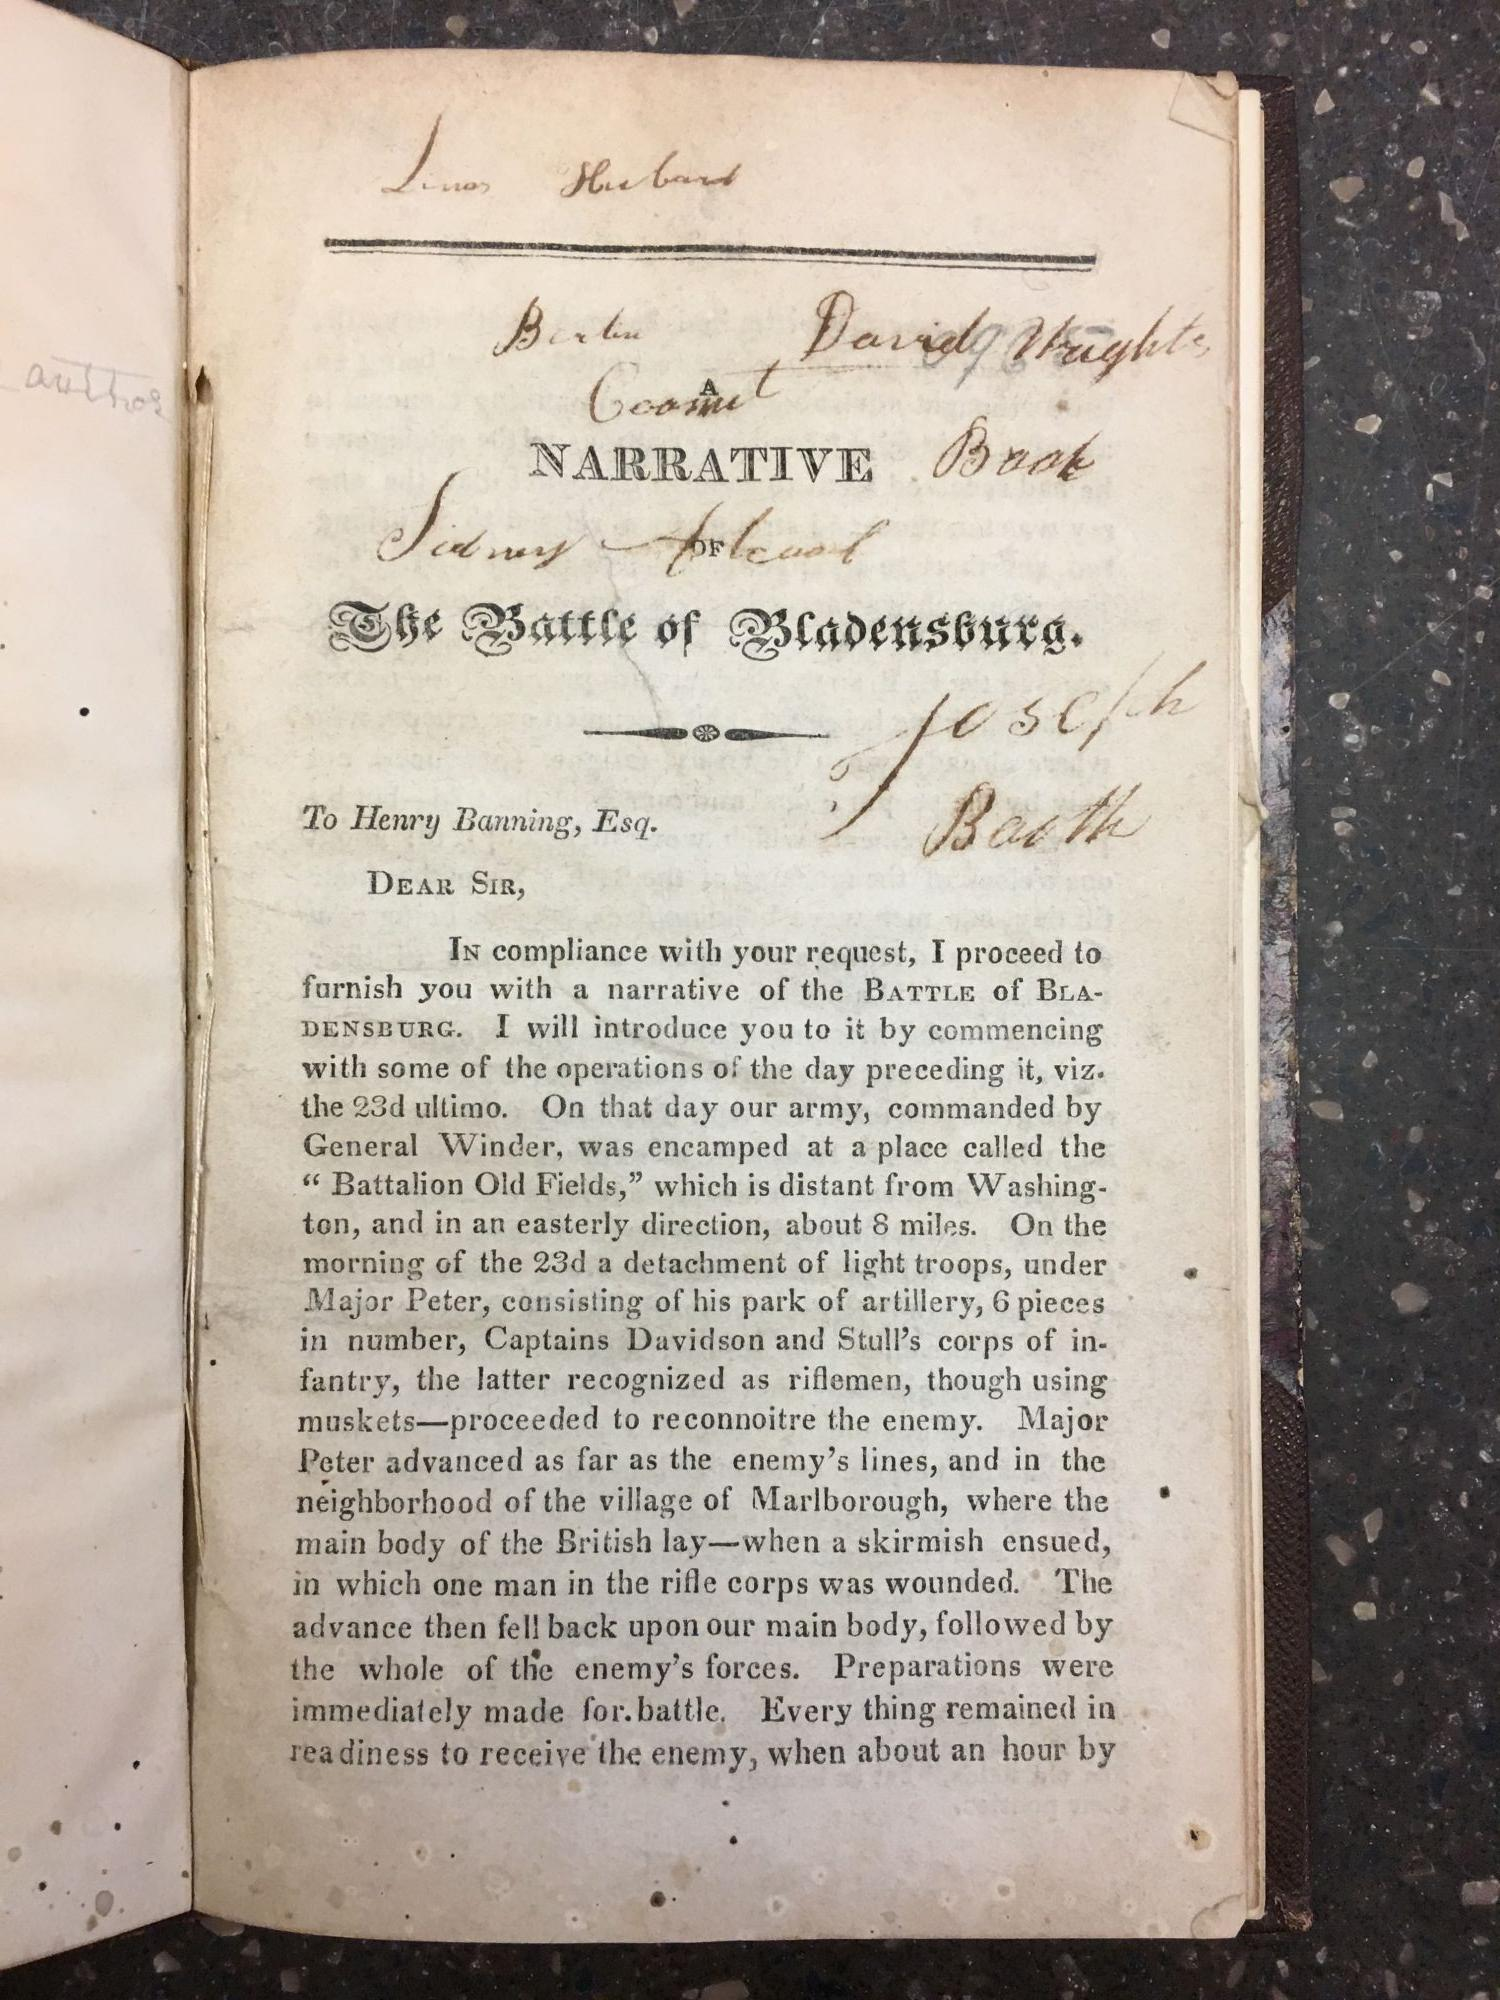 A NARRATIVE OF THE BATTLE OF BLADENSBURG; IN A LETTER TO HENRY BANNING, ESQ. BY AN OFFICER OF GEN. SMITH'S STAFF. Thomas L. McKenney, Thomas Loraine.